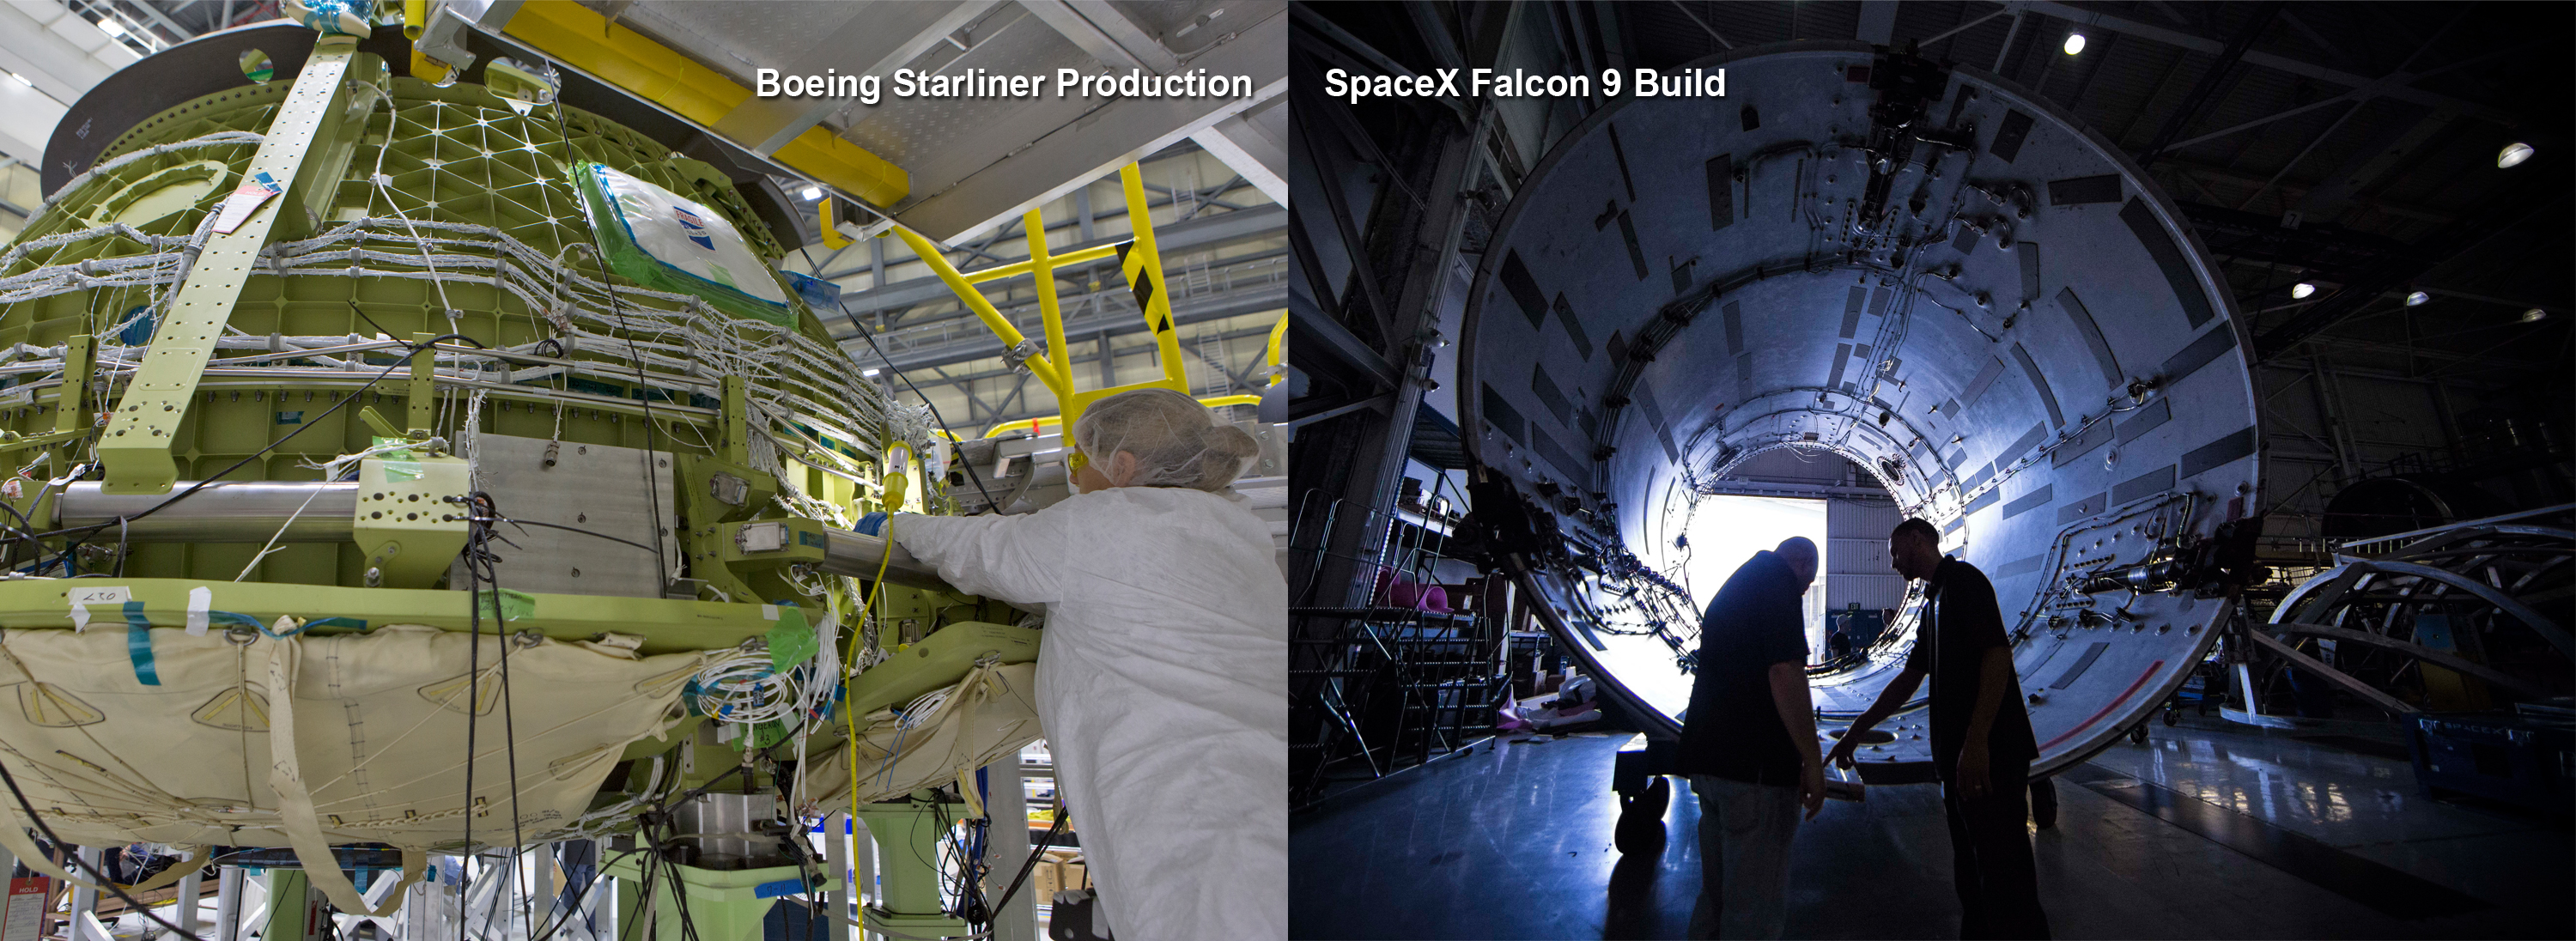 Combined image with Boeing Starliner in production on the left, and SpaceX Falcon 9 build on the right